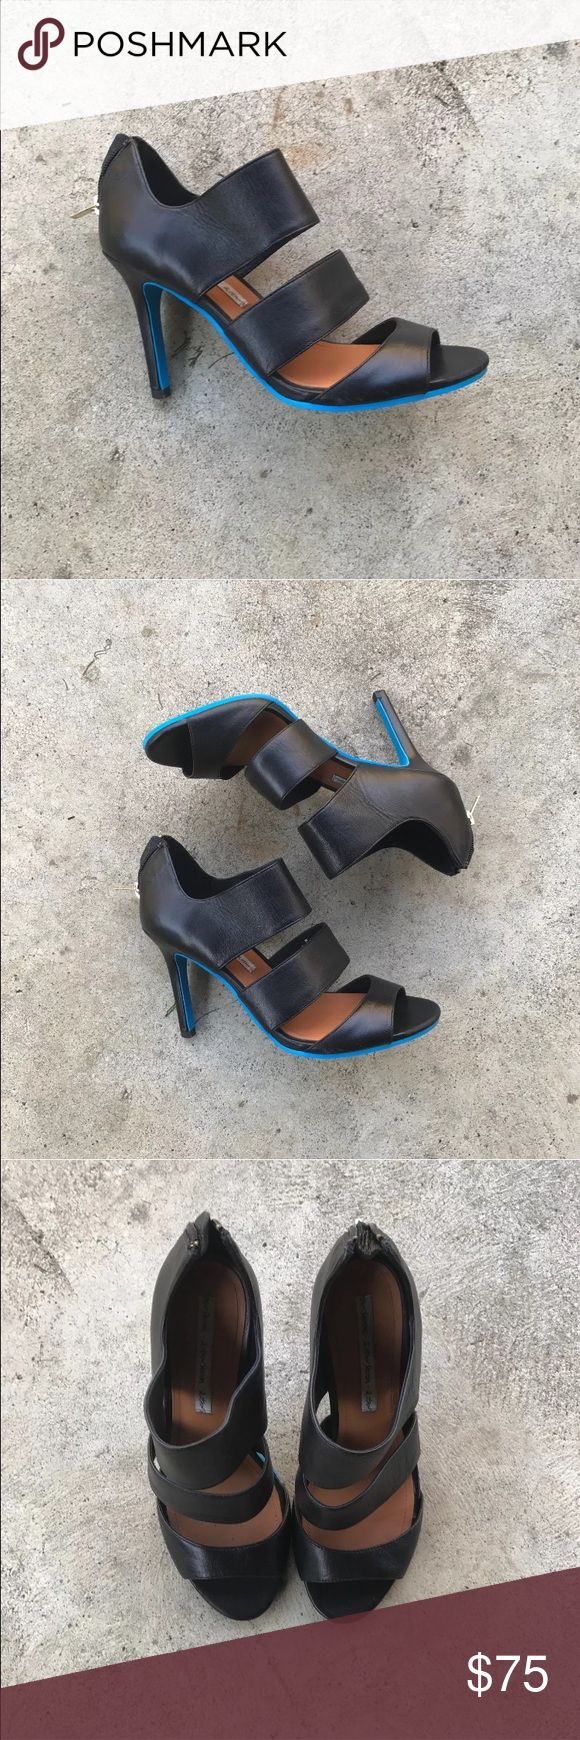 & Other Stories Heels & other stories black leather straps pumps/heels. These have an awesome blue bottom and the only wear seen is on the bottom. Size EU 7/US 7. & Other Stories Shoes Heels